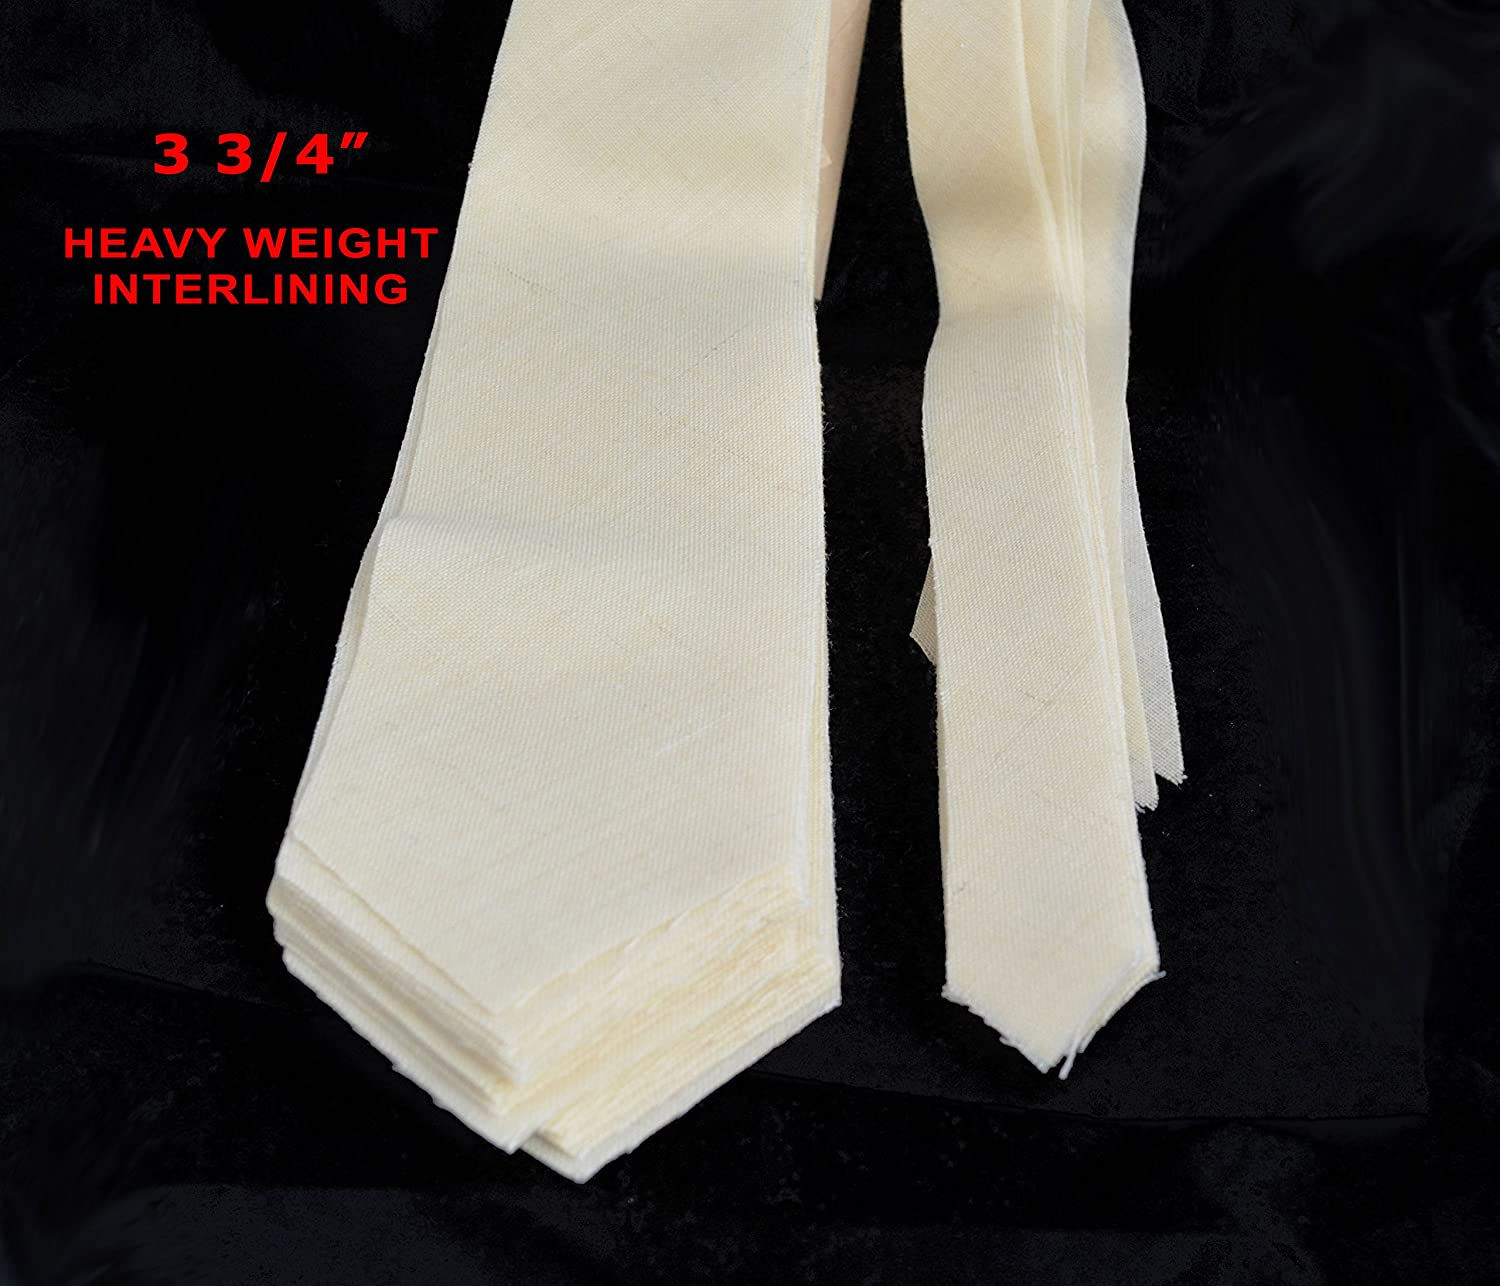 5 SIZES AVAILABLE 10 PACK of PRE-CUT 100/% wool HEAVY weight necktie interfacing // interlining 3 3//4 AC Ter Kuile made in Netherlands finest available